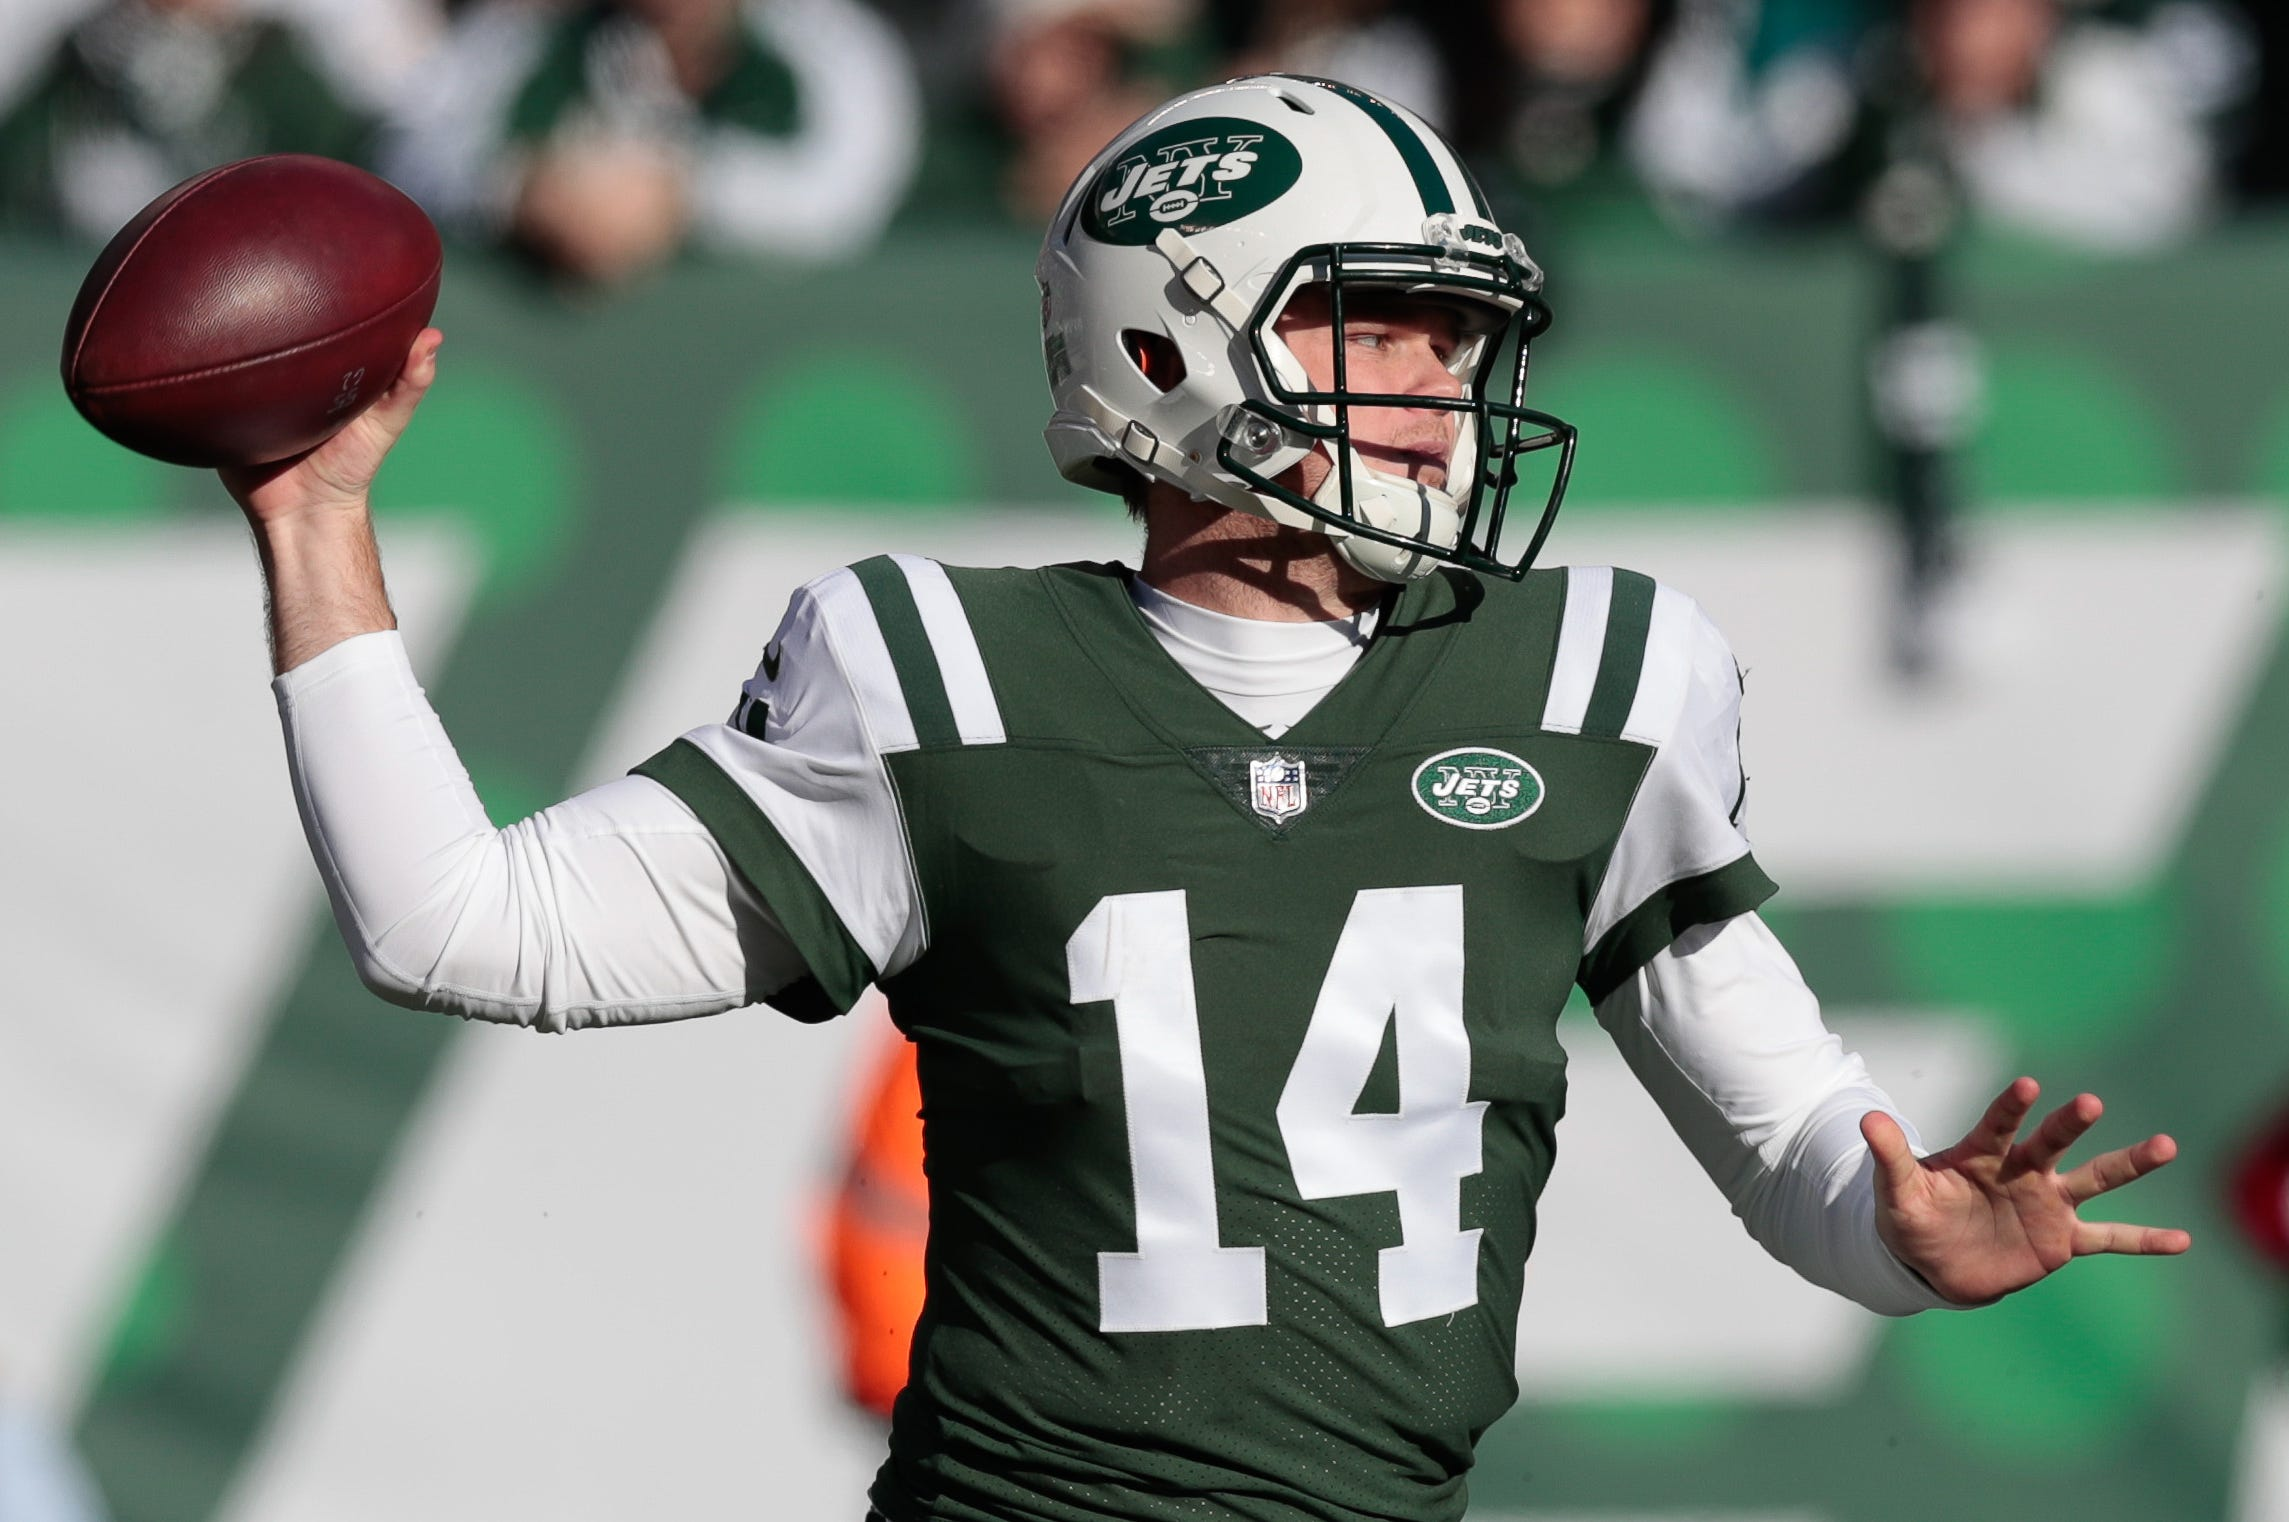 23. Jets (24): New HC Adam Gase inherits QB Sam Darnold, draft's third overall pick and $90 million in cap space. Is young team finally ready for takeoff?